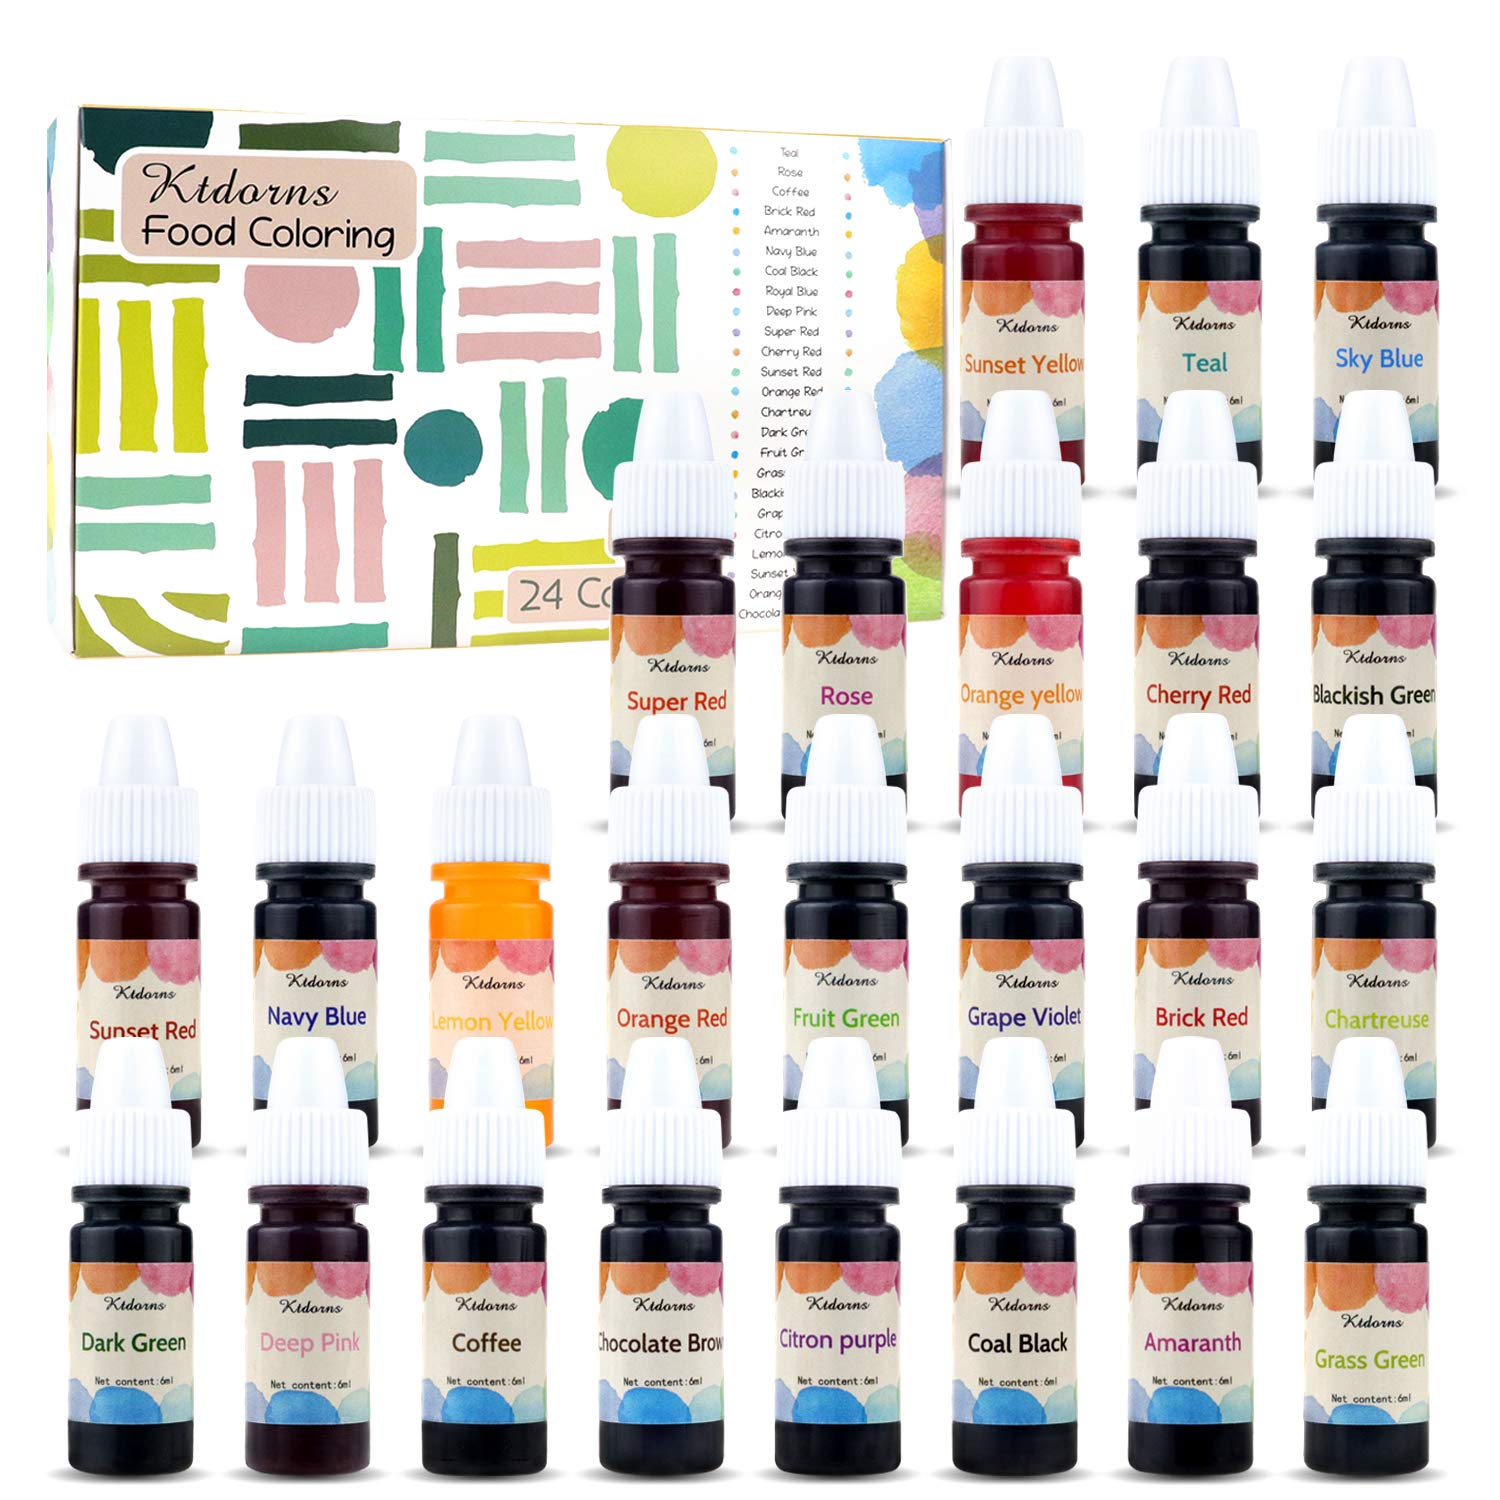 Food Coloring-24 Color Variety Kit-cake food coloring liquid Variety Kit for Food color Baking, Decorating,Fondant and Cooking, Slime Making Supplies Kit - .25 fl. oz. Bottles